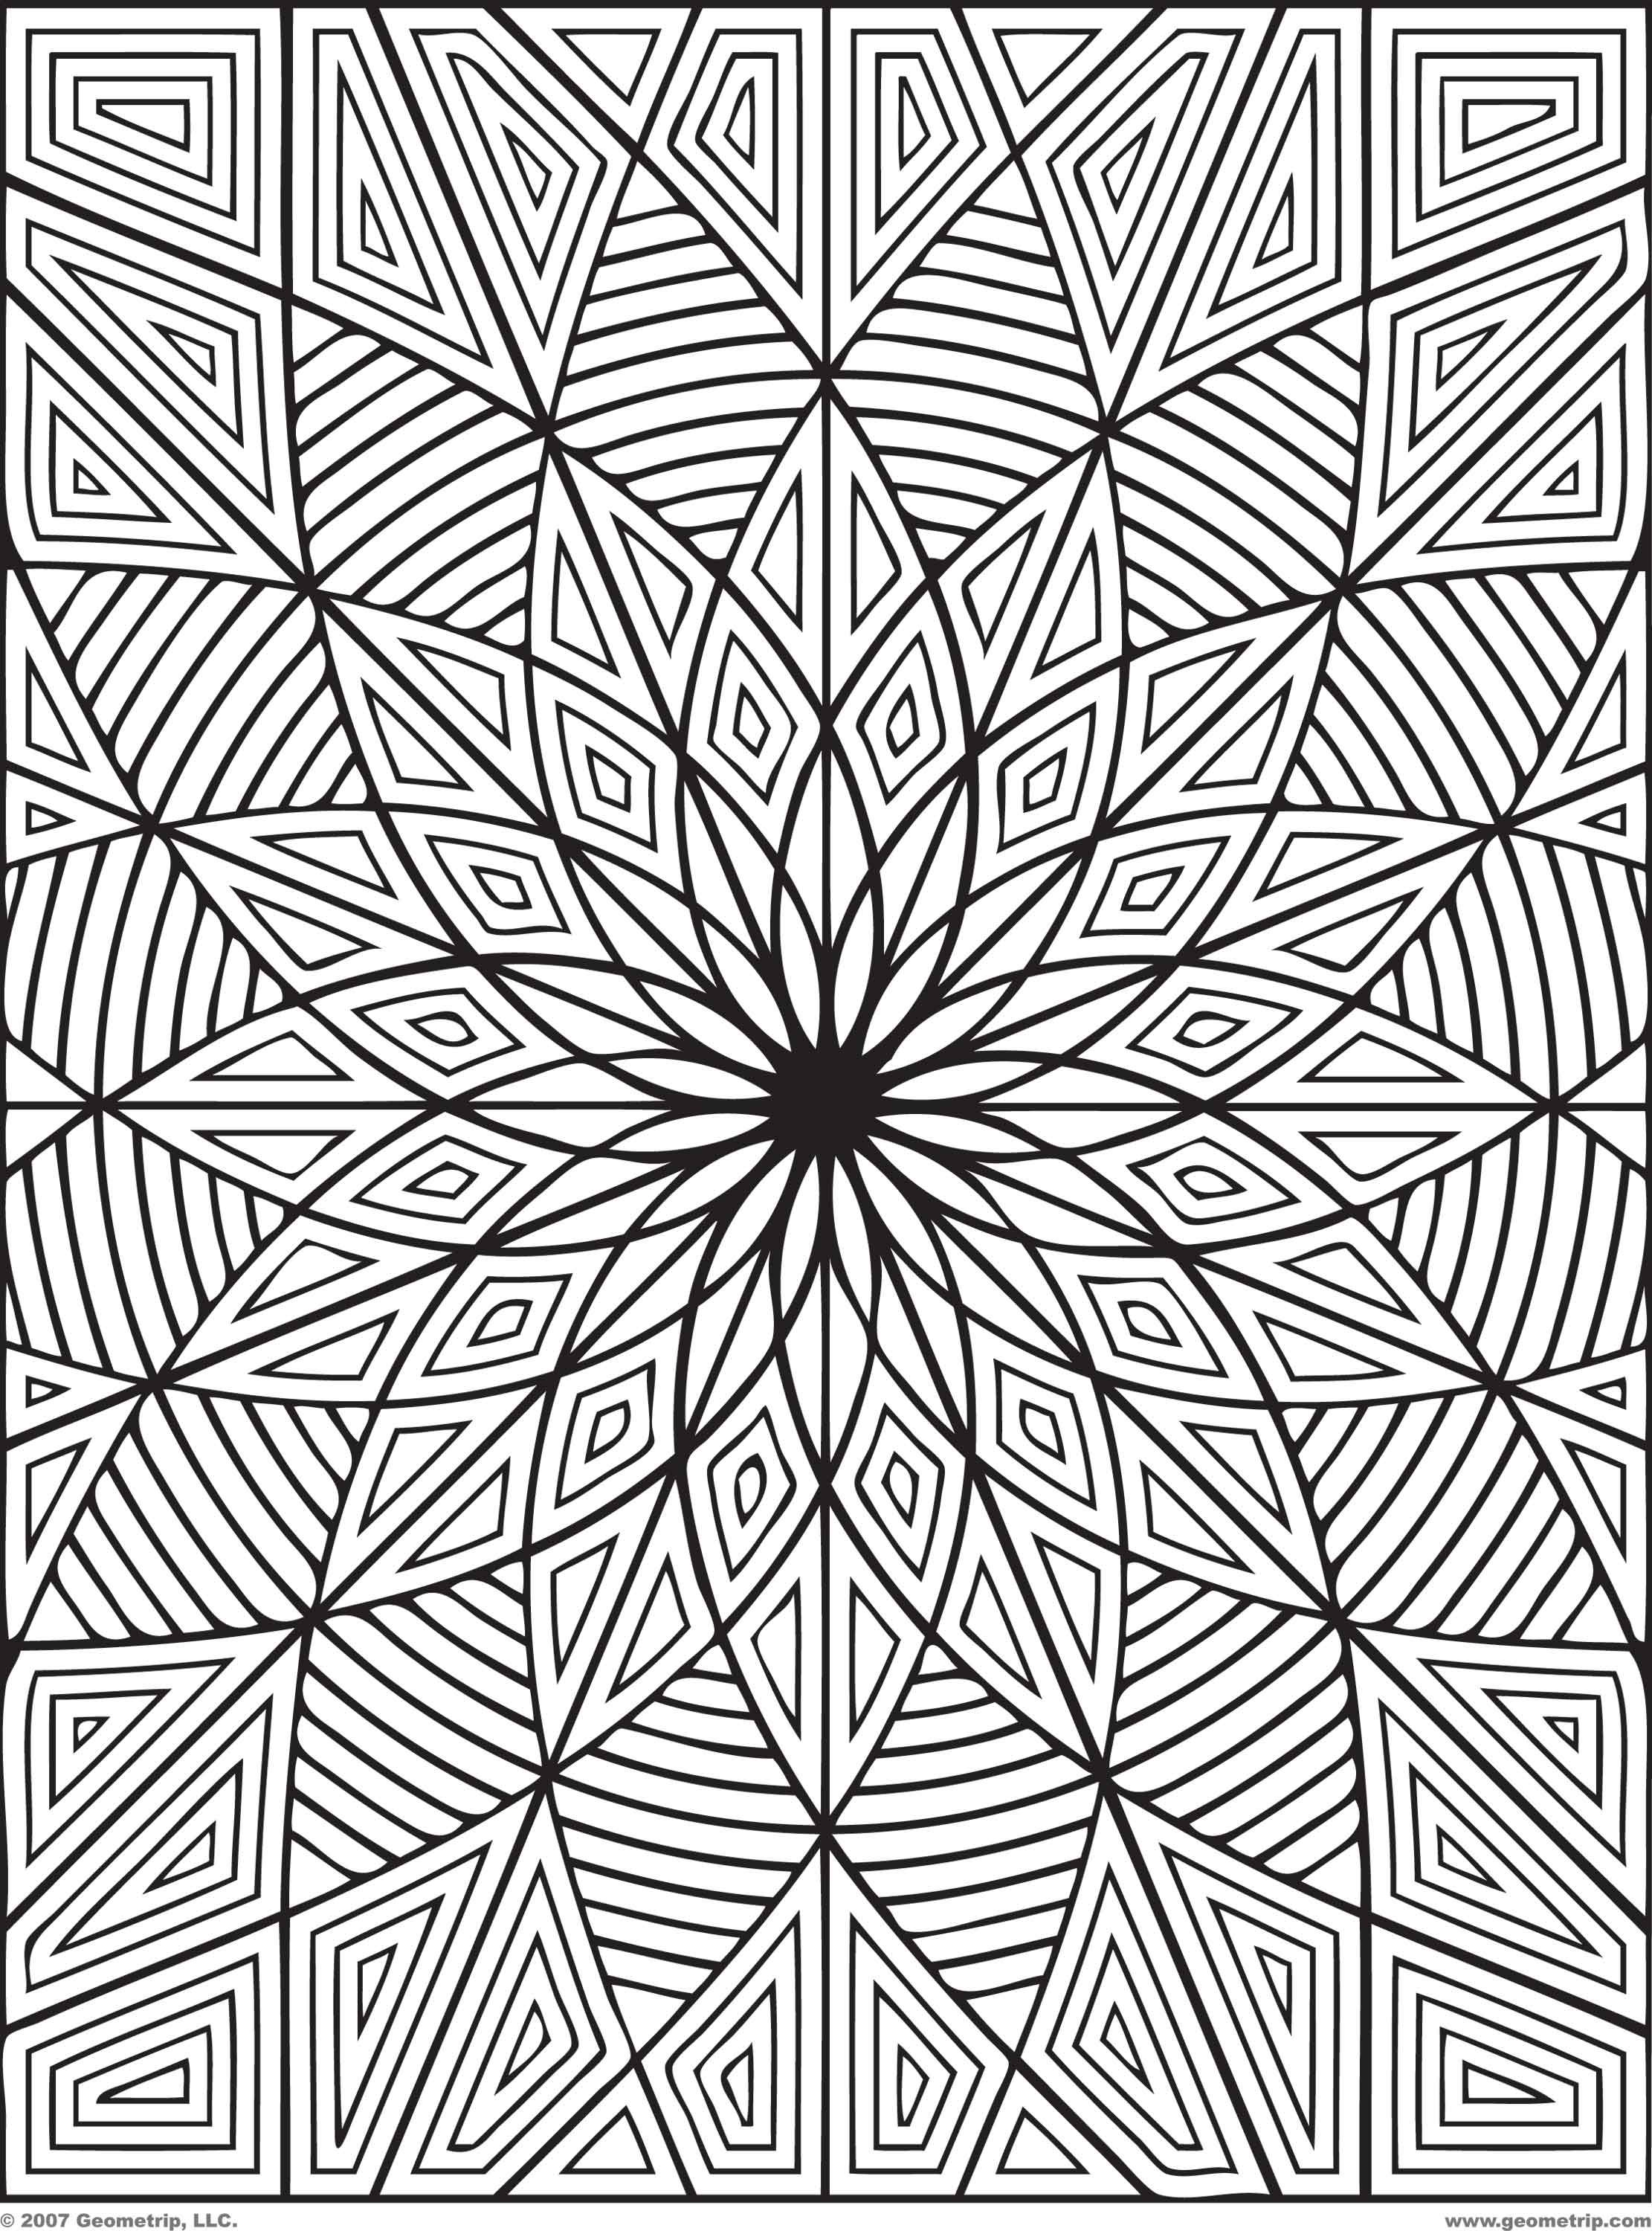 Pictures Of Cool Designs To Color Cool Designs To Color Cool